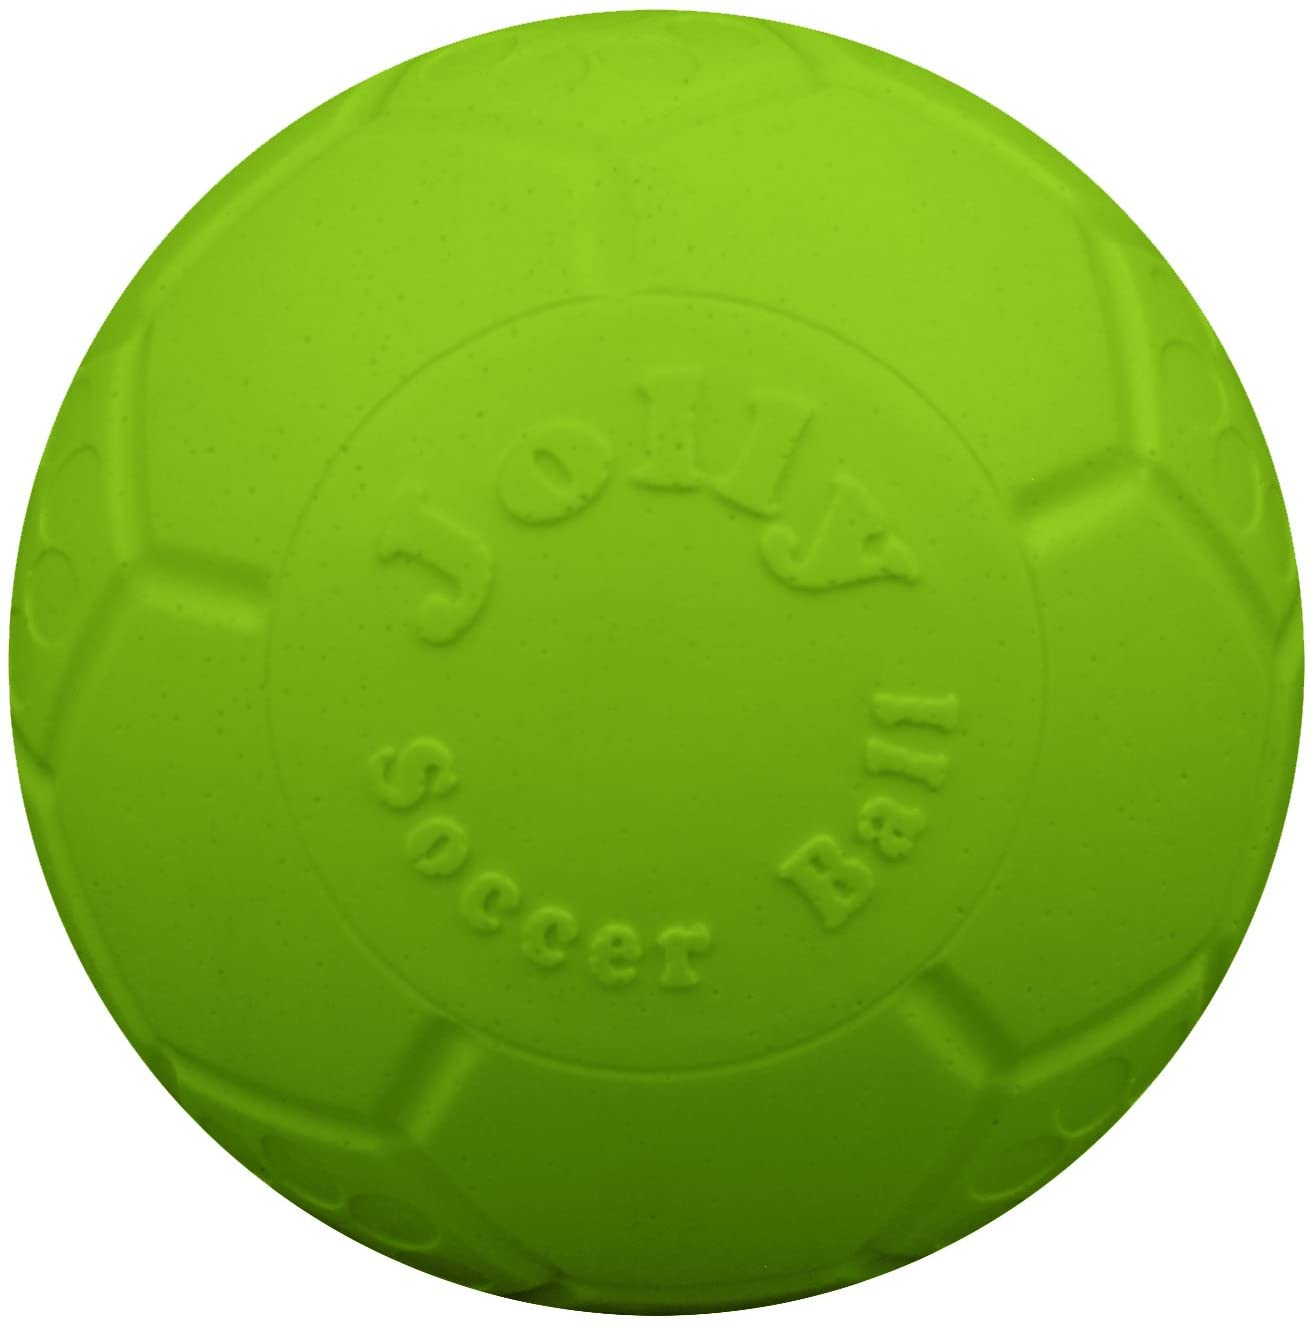 Pet Supplies : Jolly Pets Large Soccer Ball Floating-Bouncing Dog Toy, 8 inch Diameter, Apple Green :